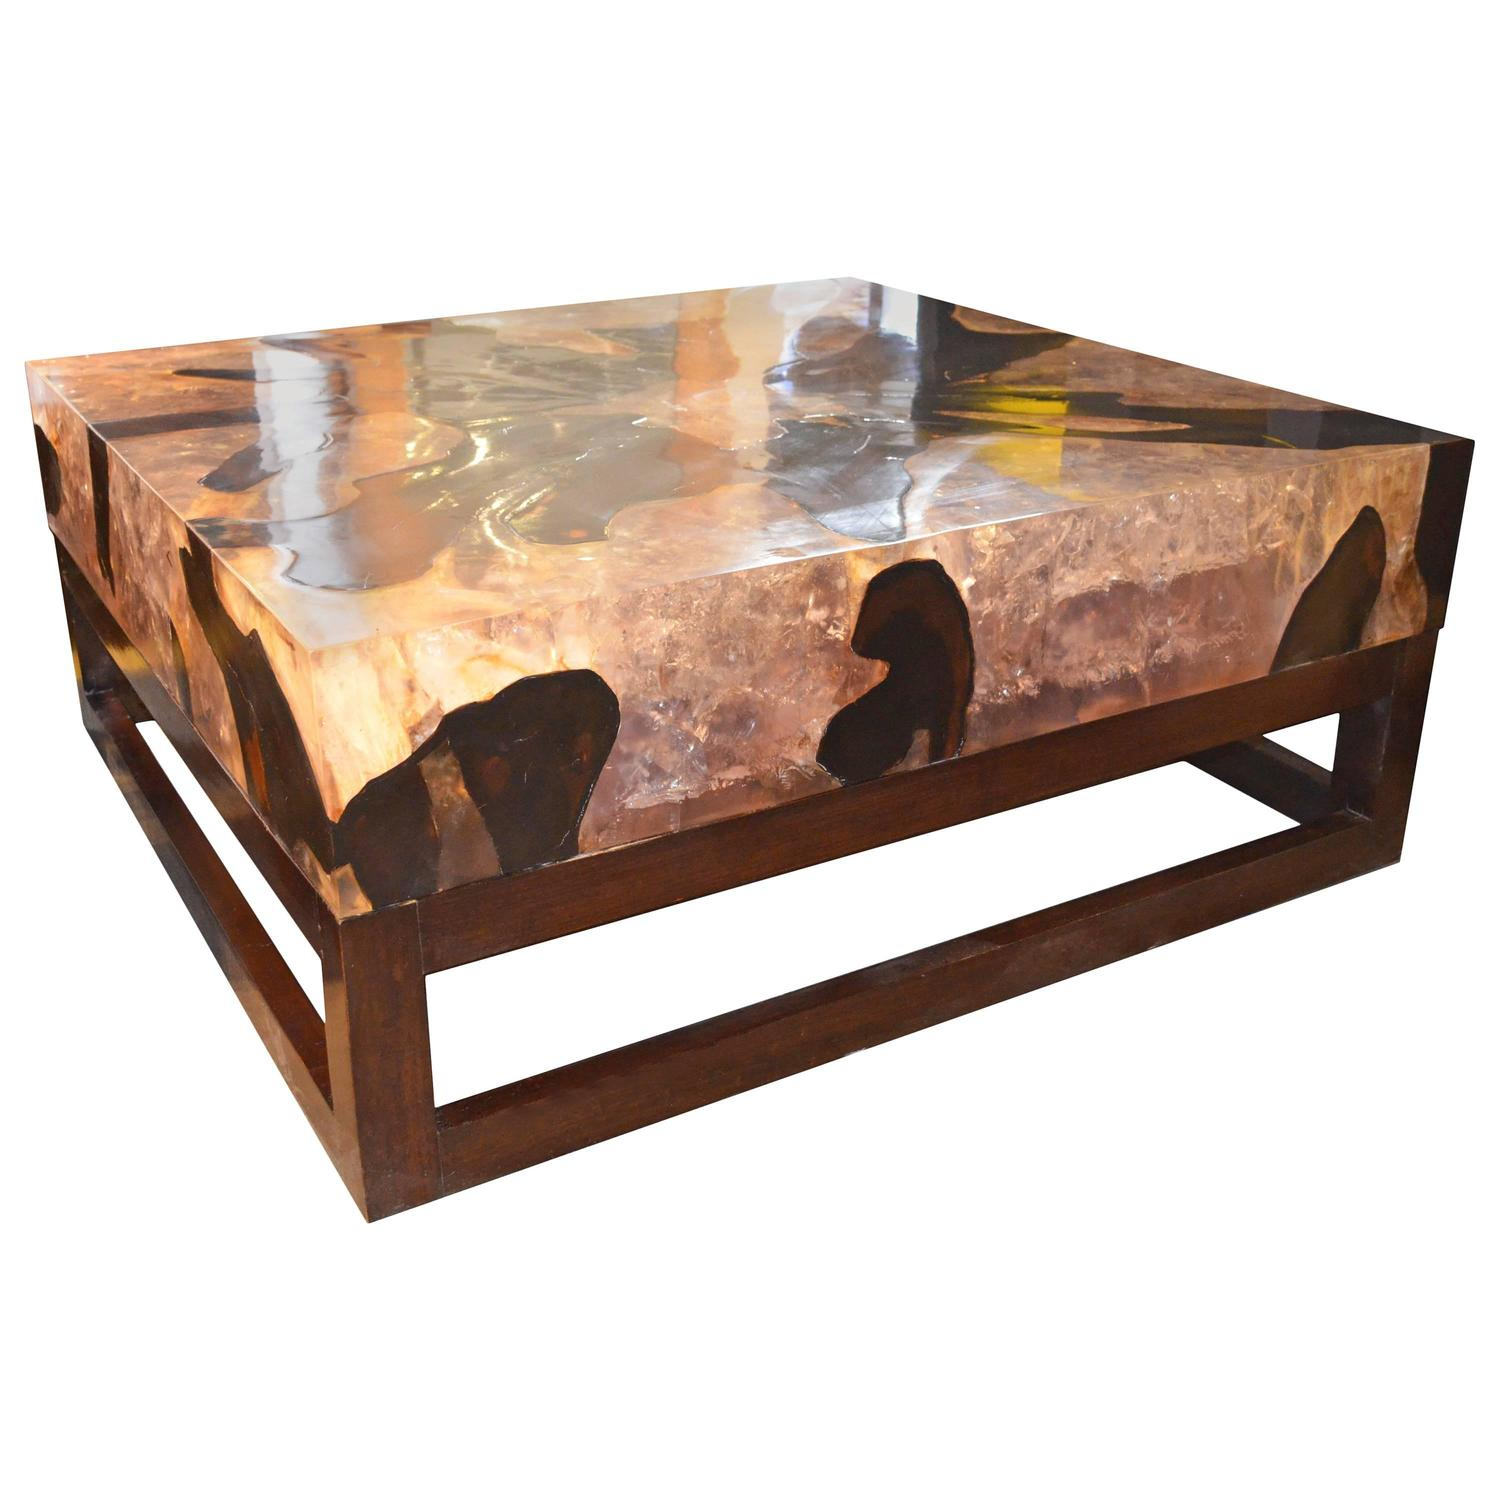 Andrianna Shamaris Cracked Resin Coffee Table For Sale at 1stdibs